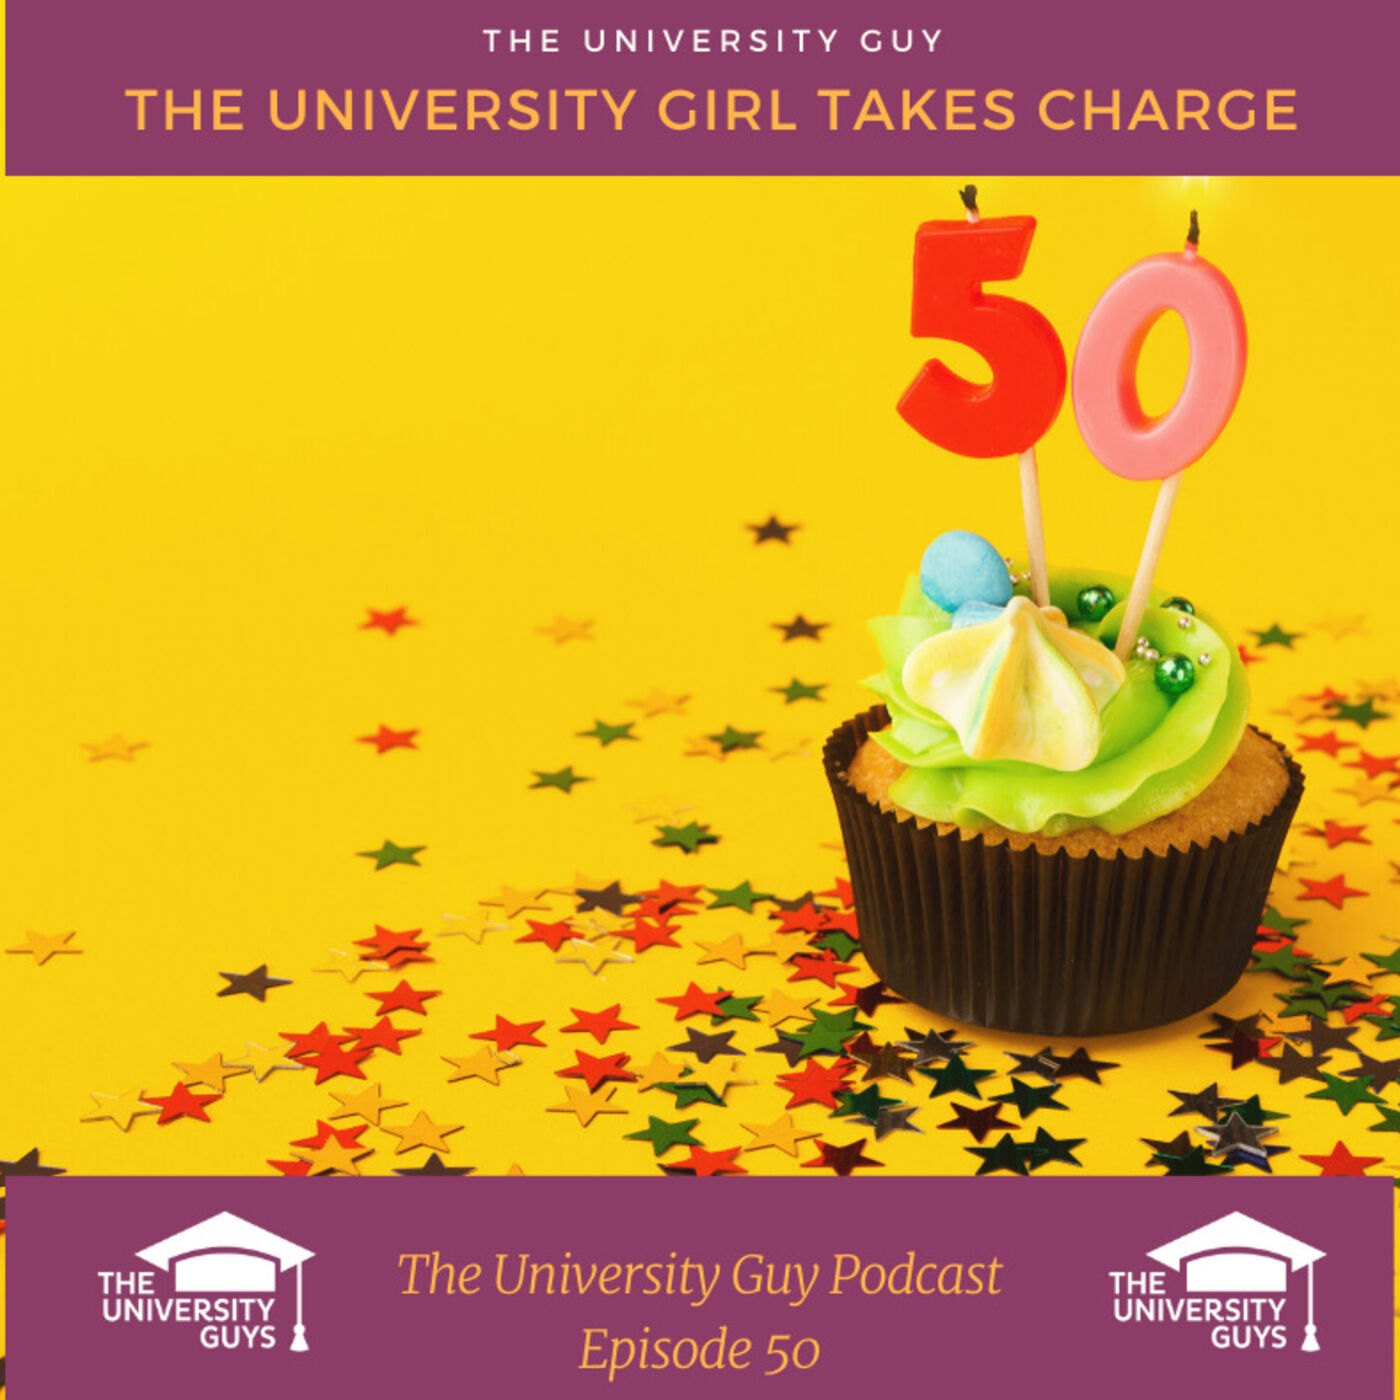 Episode 50: The University Girl Takes Charge